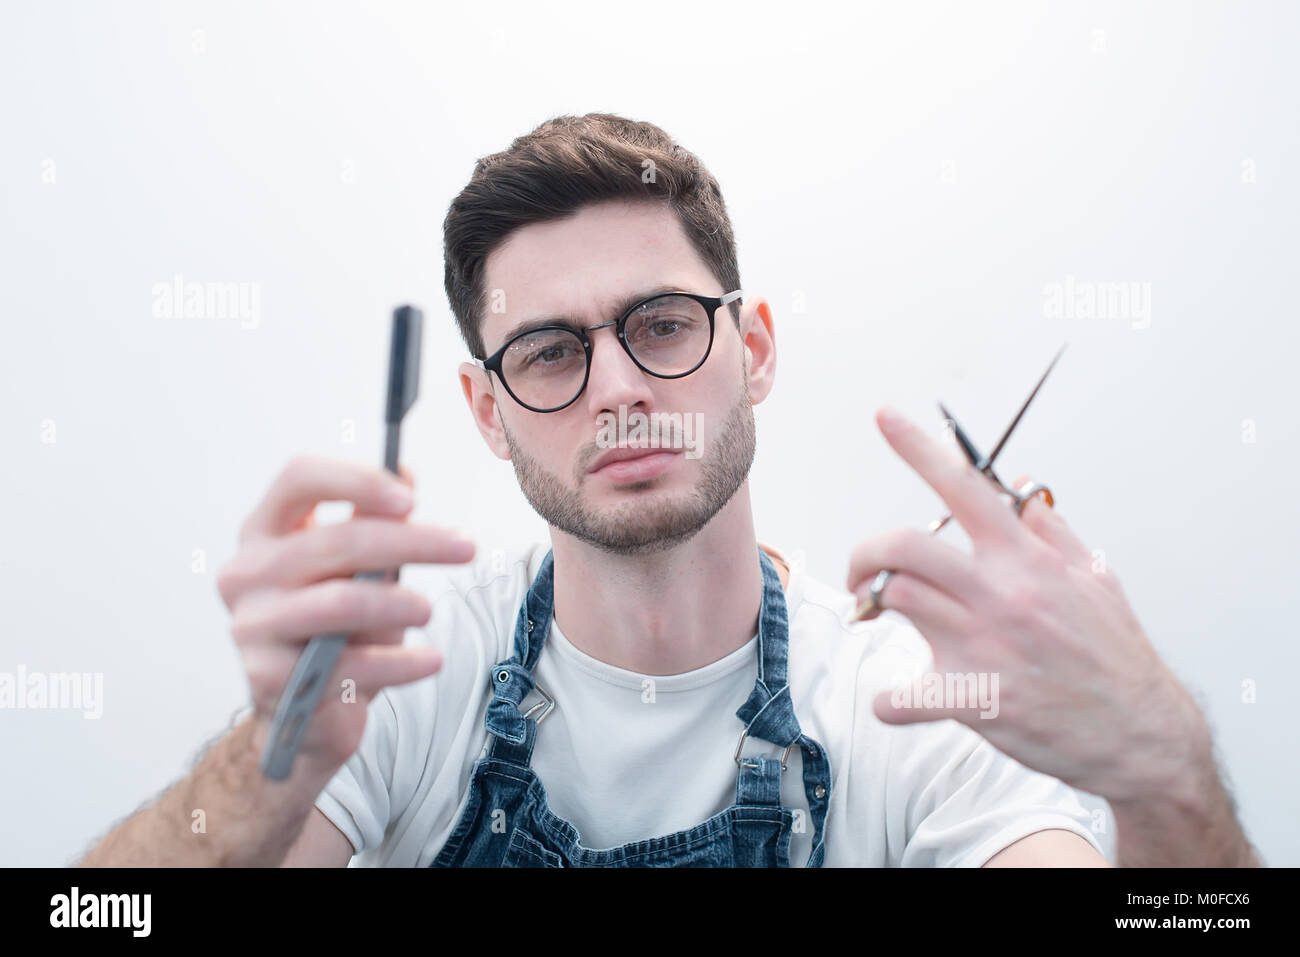 Barber keeps scissors and a razor against the background of a white wall. - Stock Image